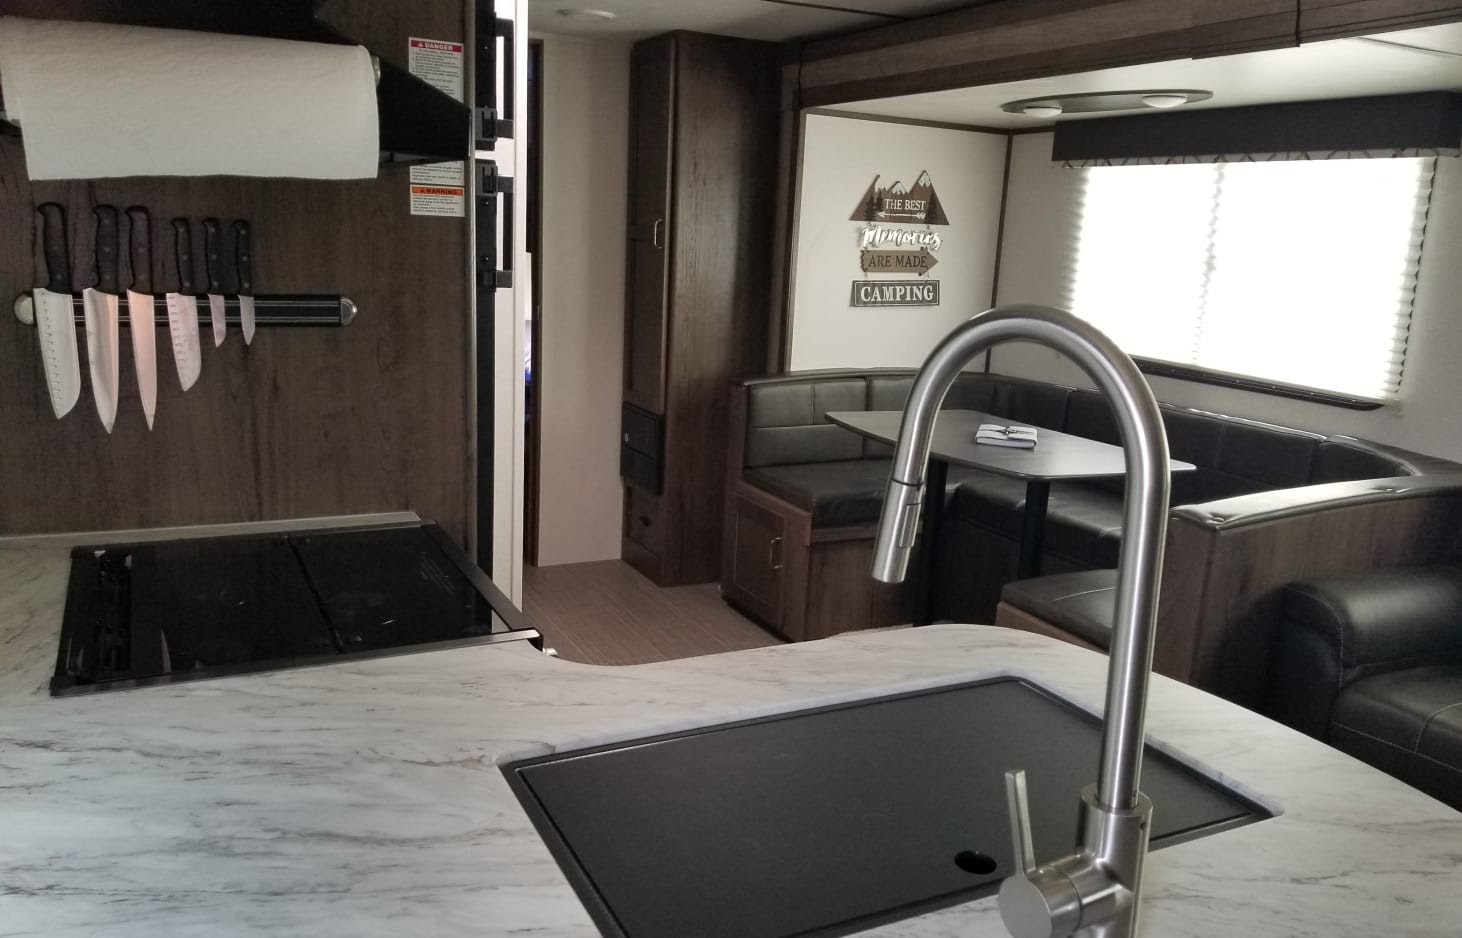 glamping in tx - this rental rv sleeps up to 10